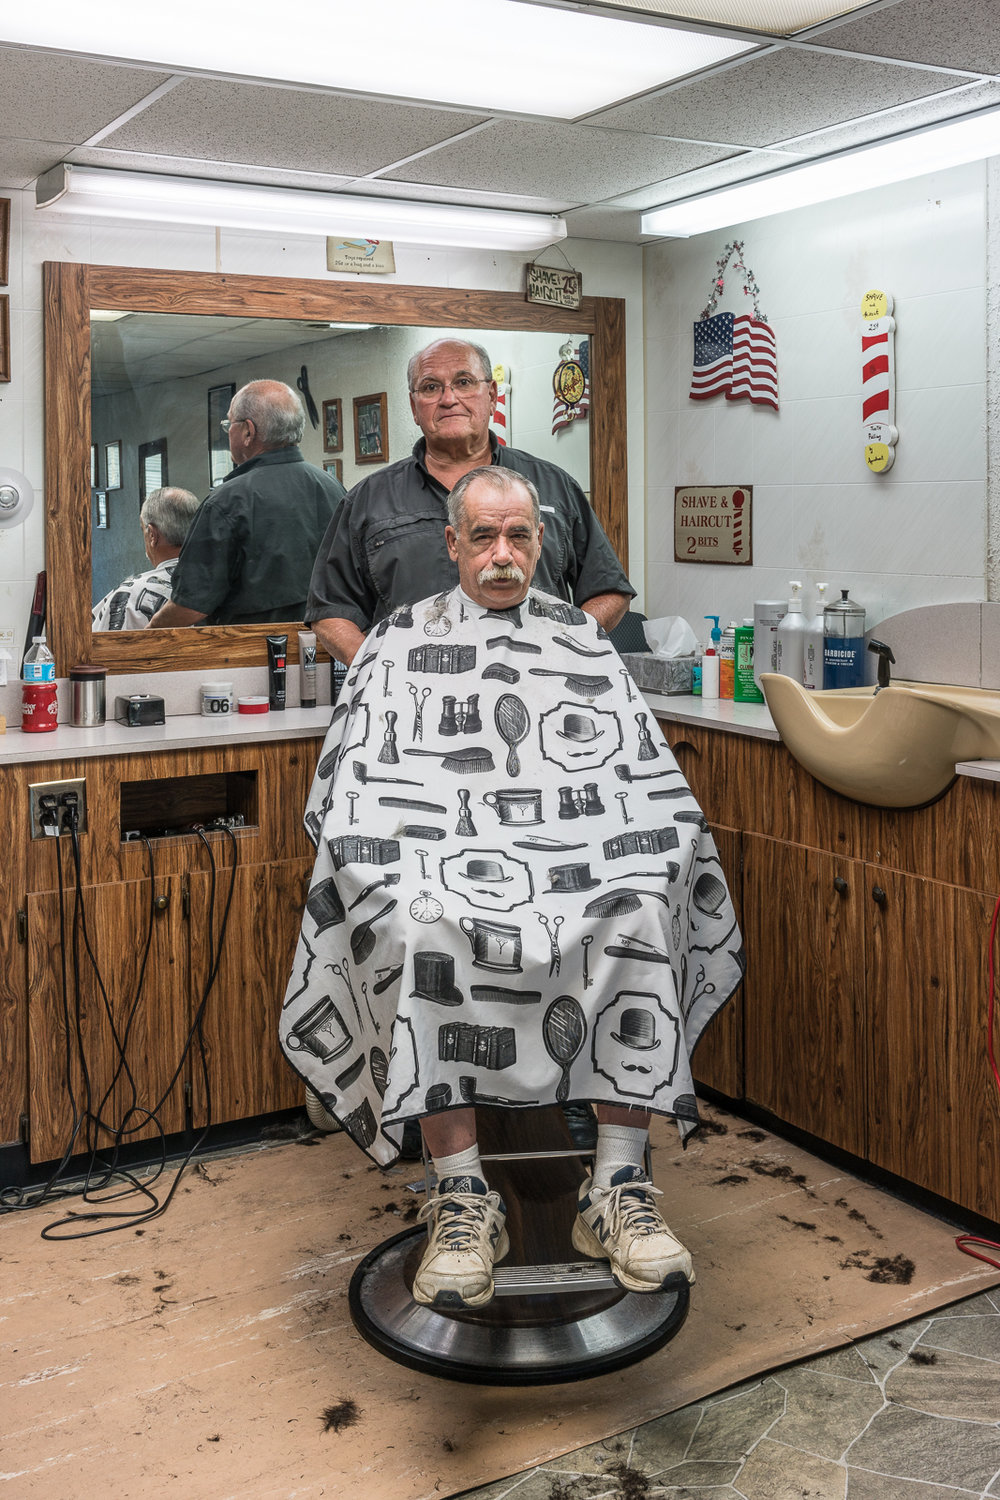 Jerry and Larry at the Barber Shop, De Soto, Missouri, 2017 © Nate Larson